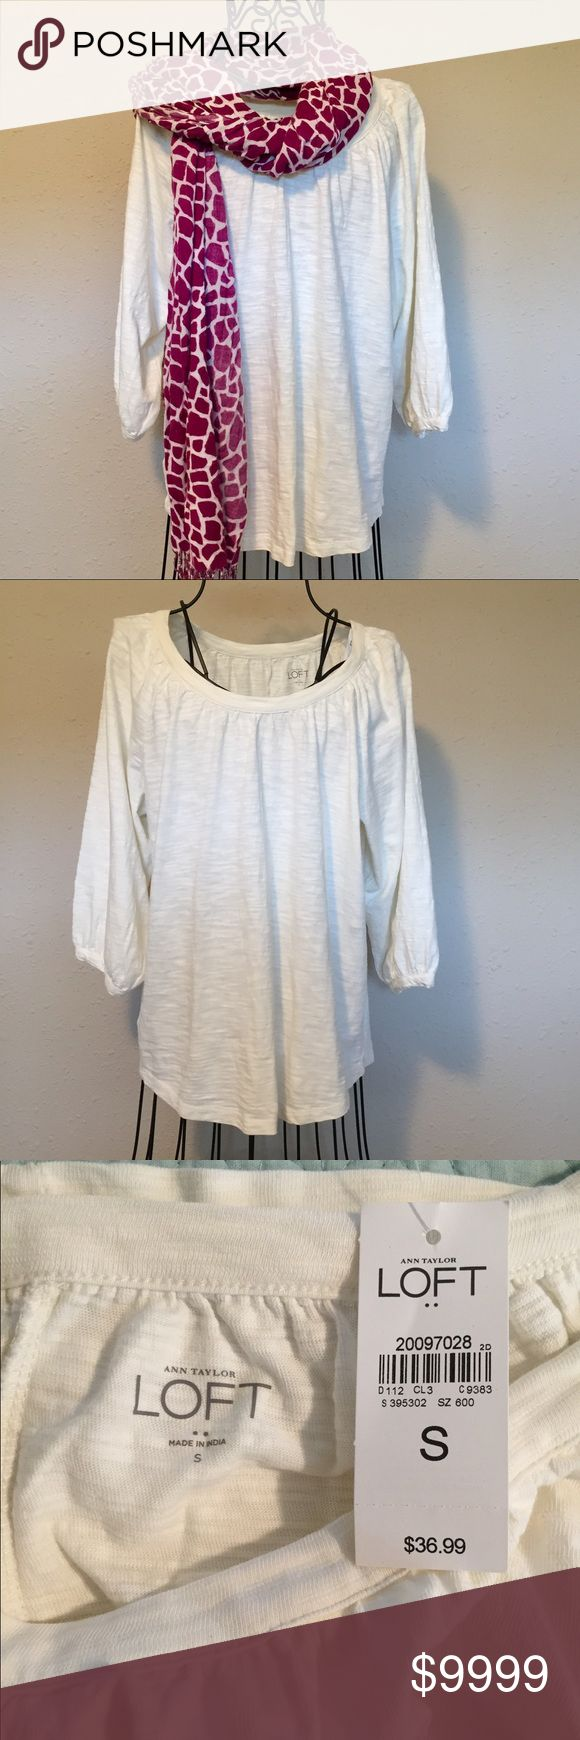 Best Just In Loft Winter White Blouse NWT NWT